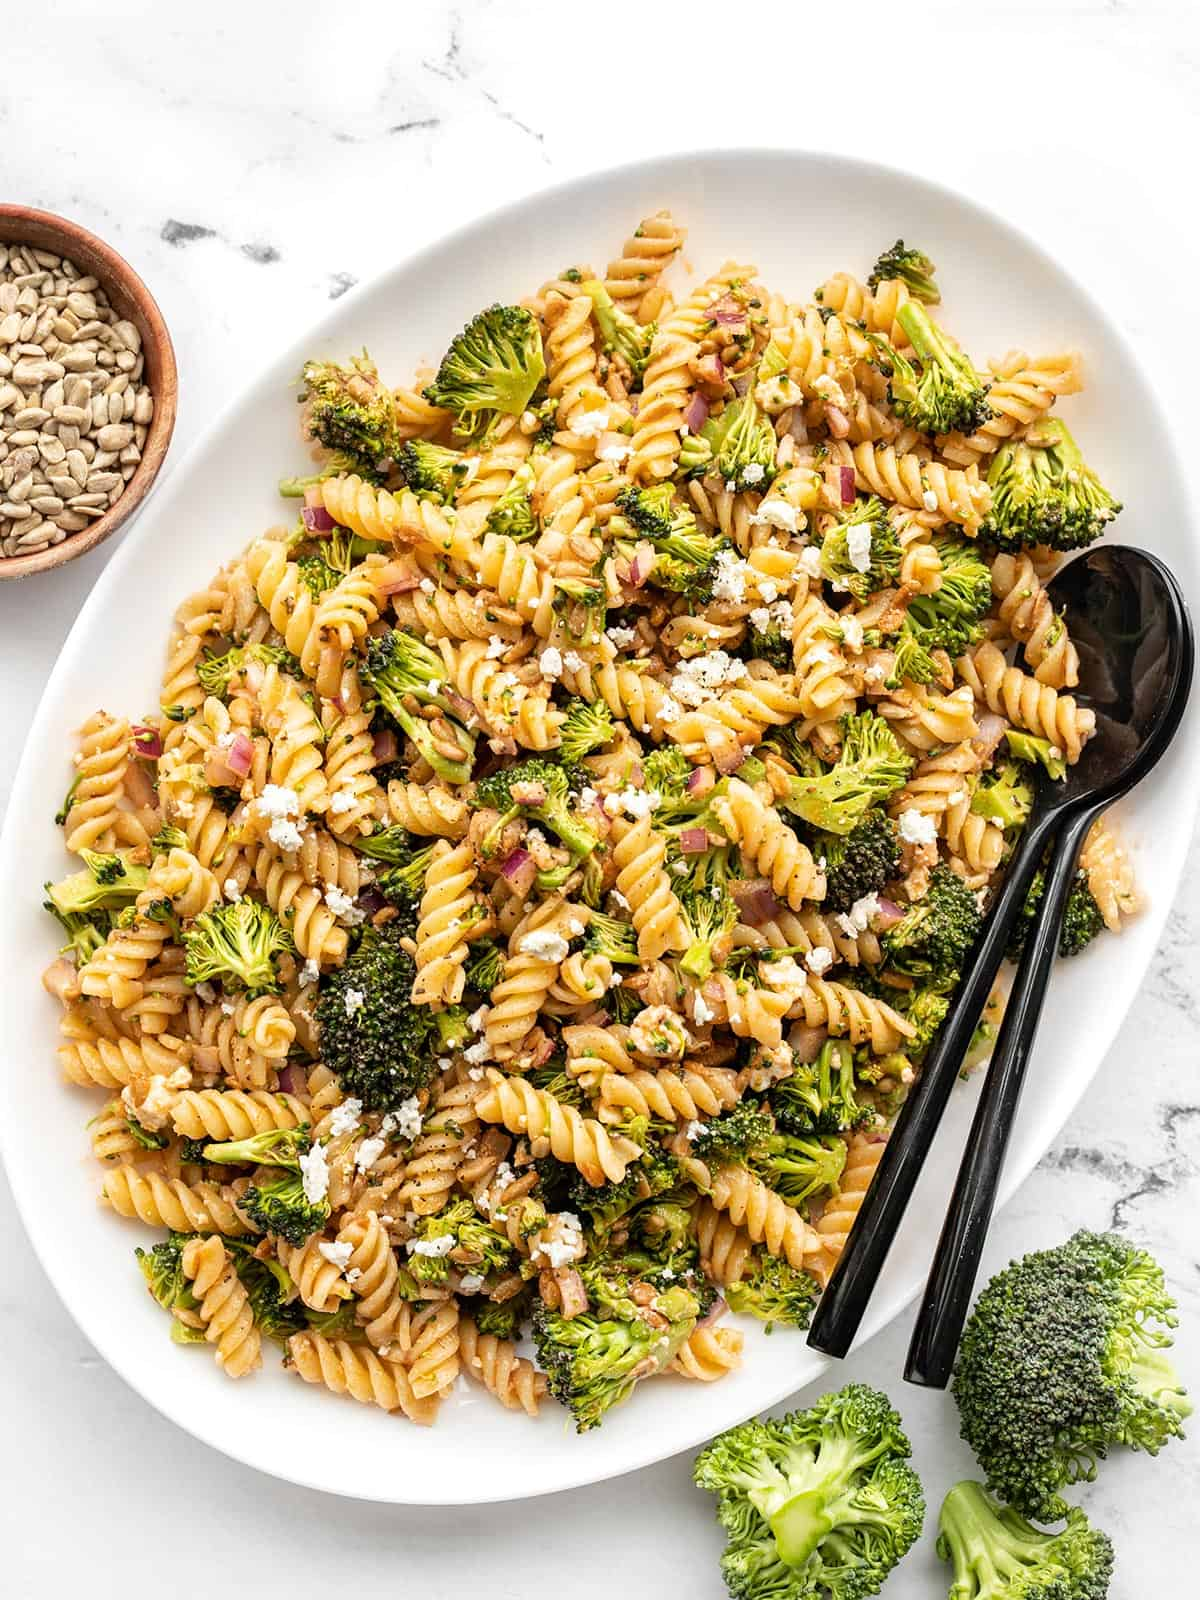 Overhead of an oval serving tray full of broccoli pasta salad with black utensils in the side